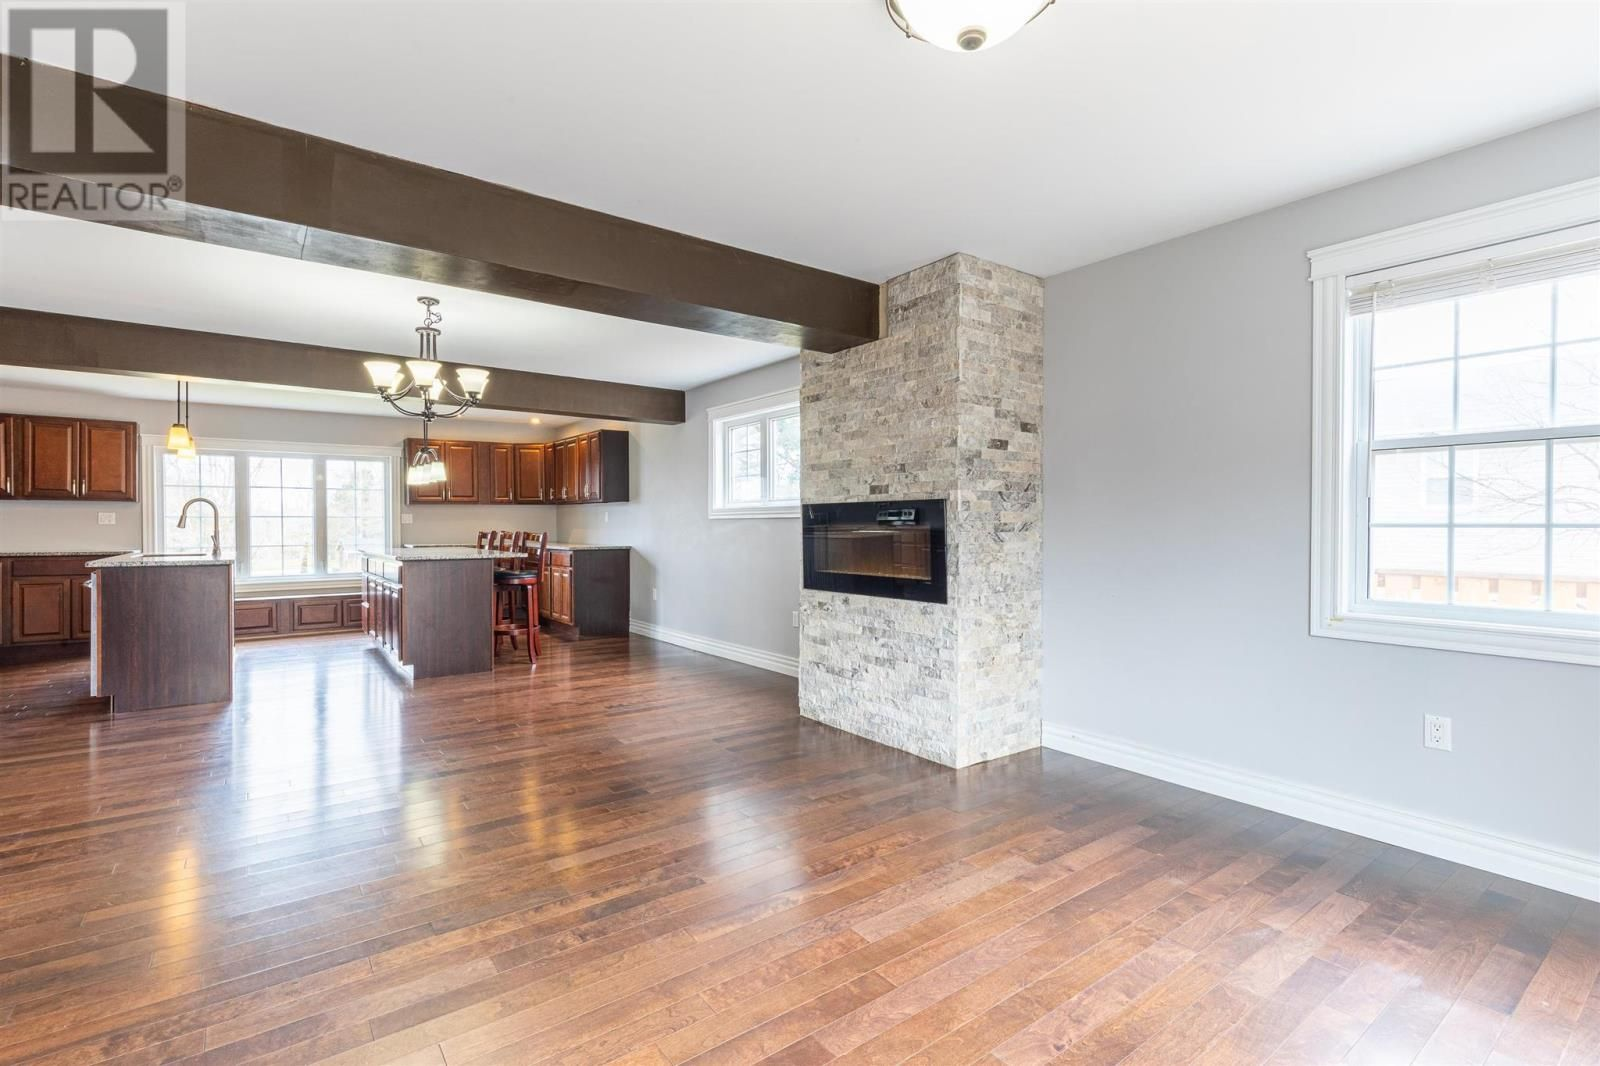 Photo 10: Photos: 5 Cherry Lane in Stratford: House for sale : MLS®# 202119303